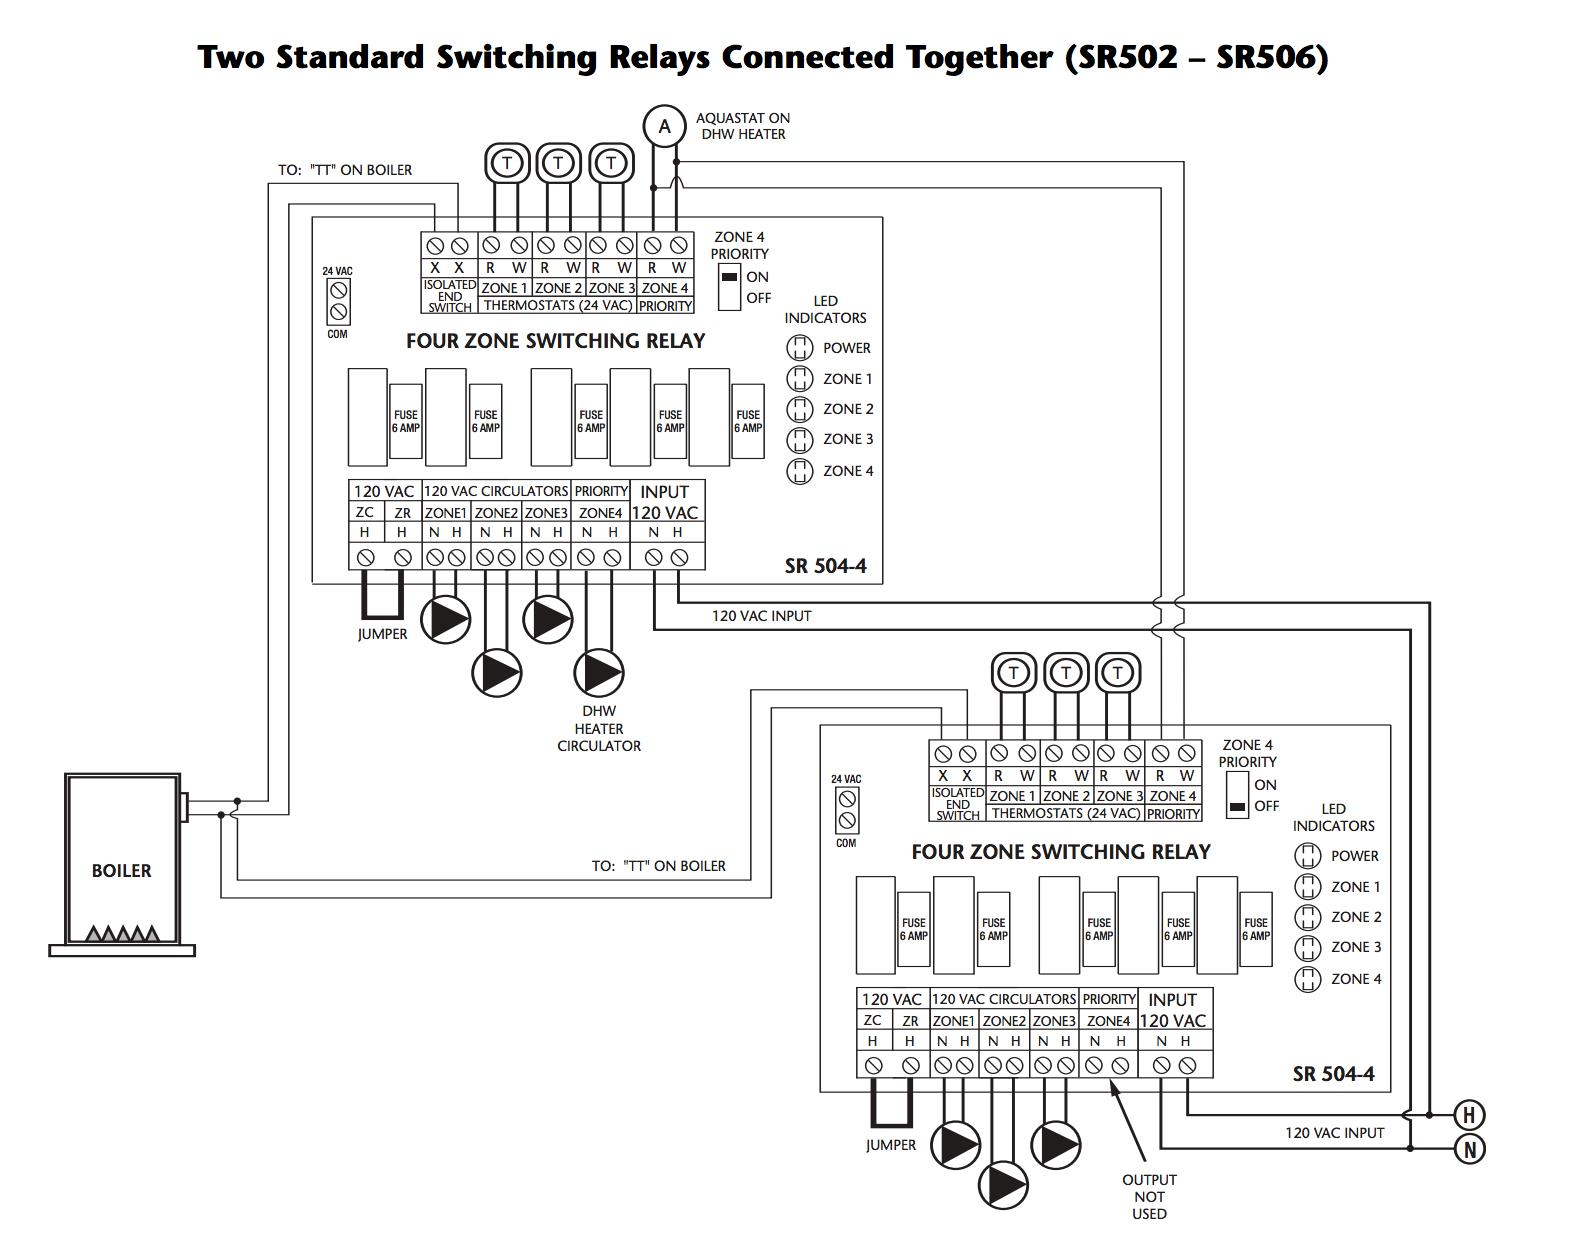 Zone Valve Wiring Installation Instructions Guide To Heating Weil Mclain Boiler Schematic Diagram How Wire Multiple Taco Sr502 Sr506 Switching Relays